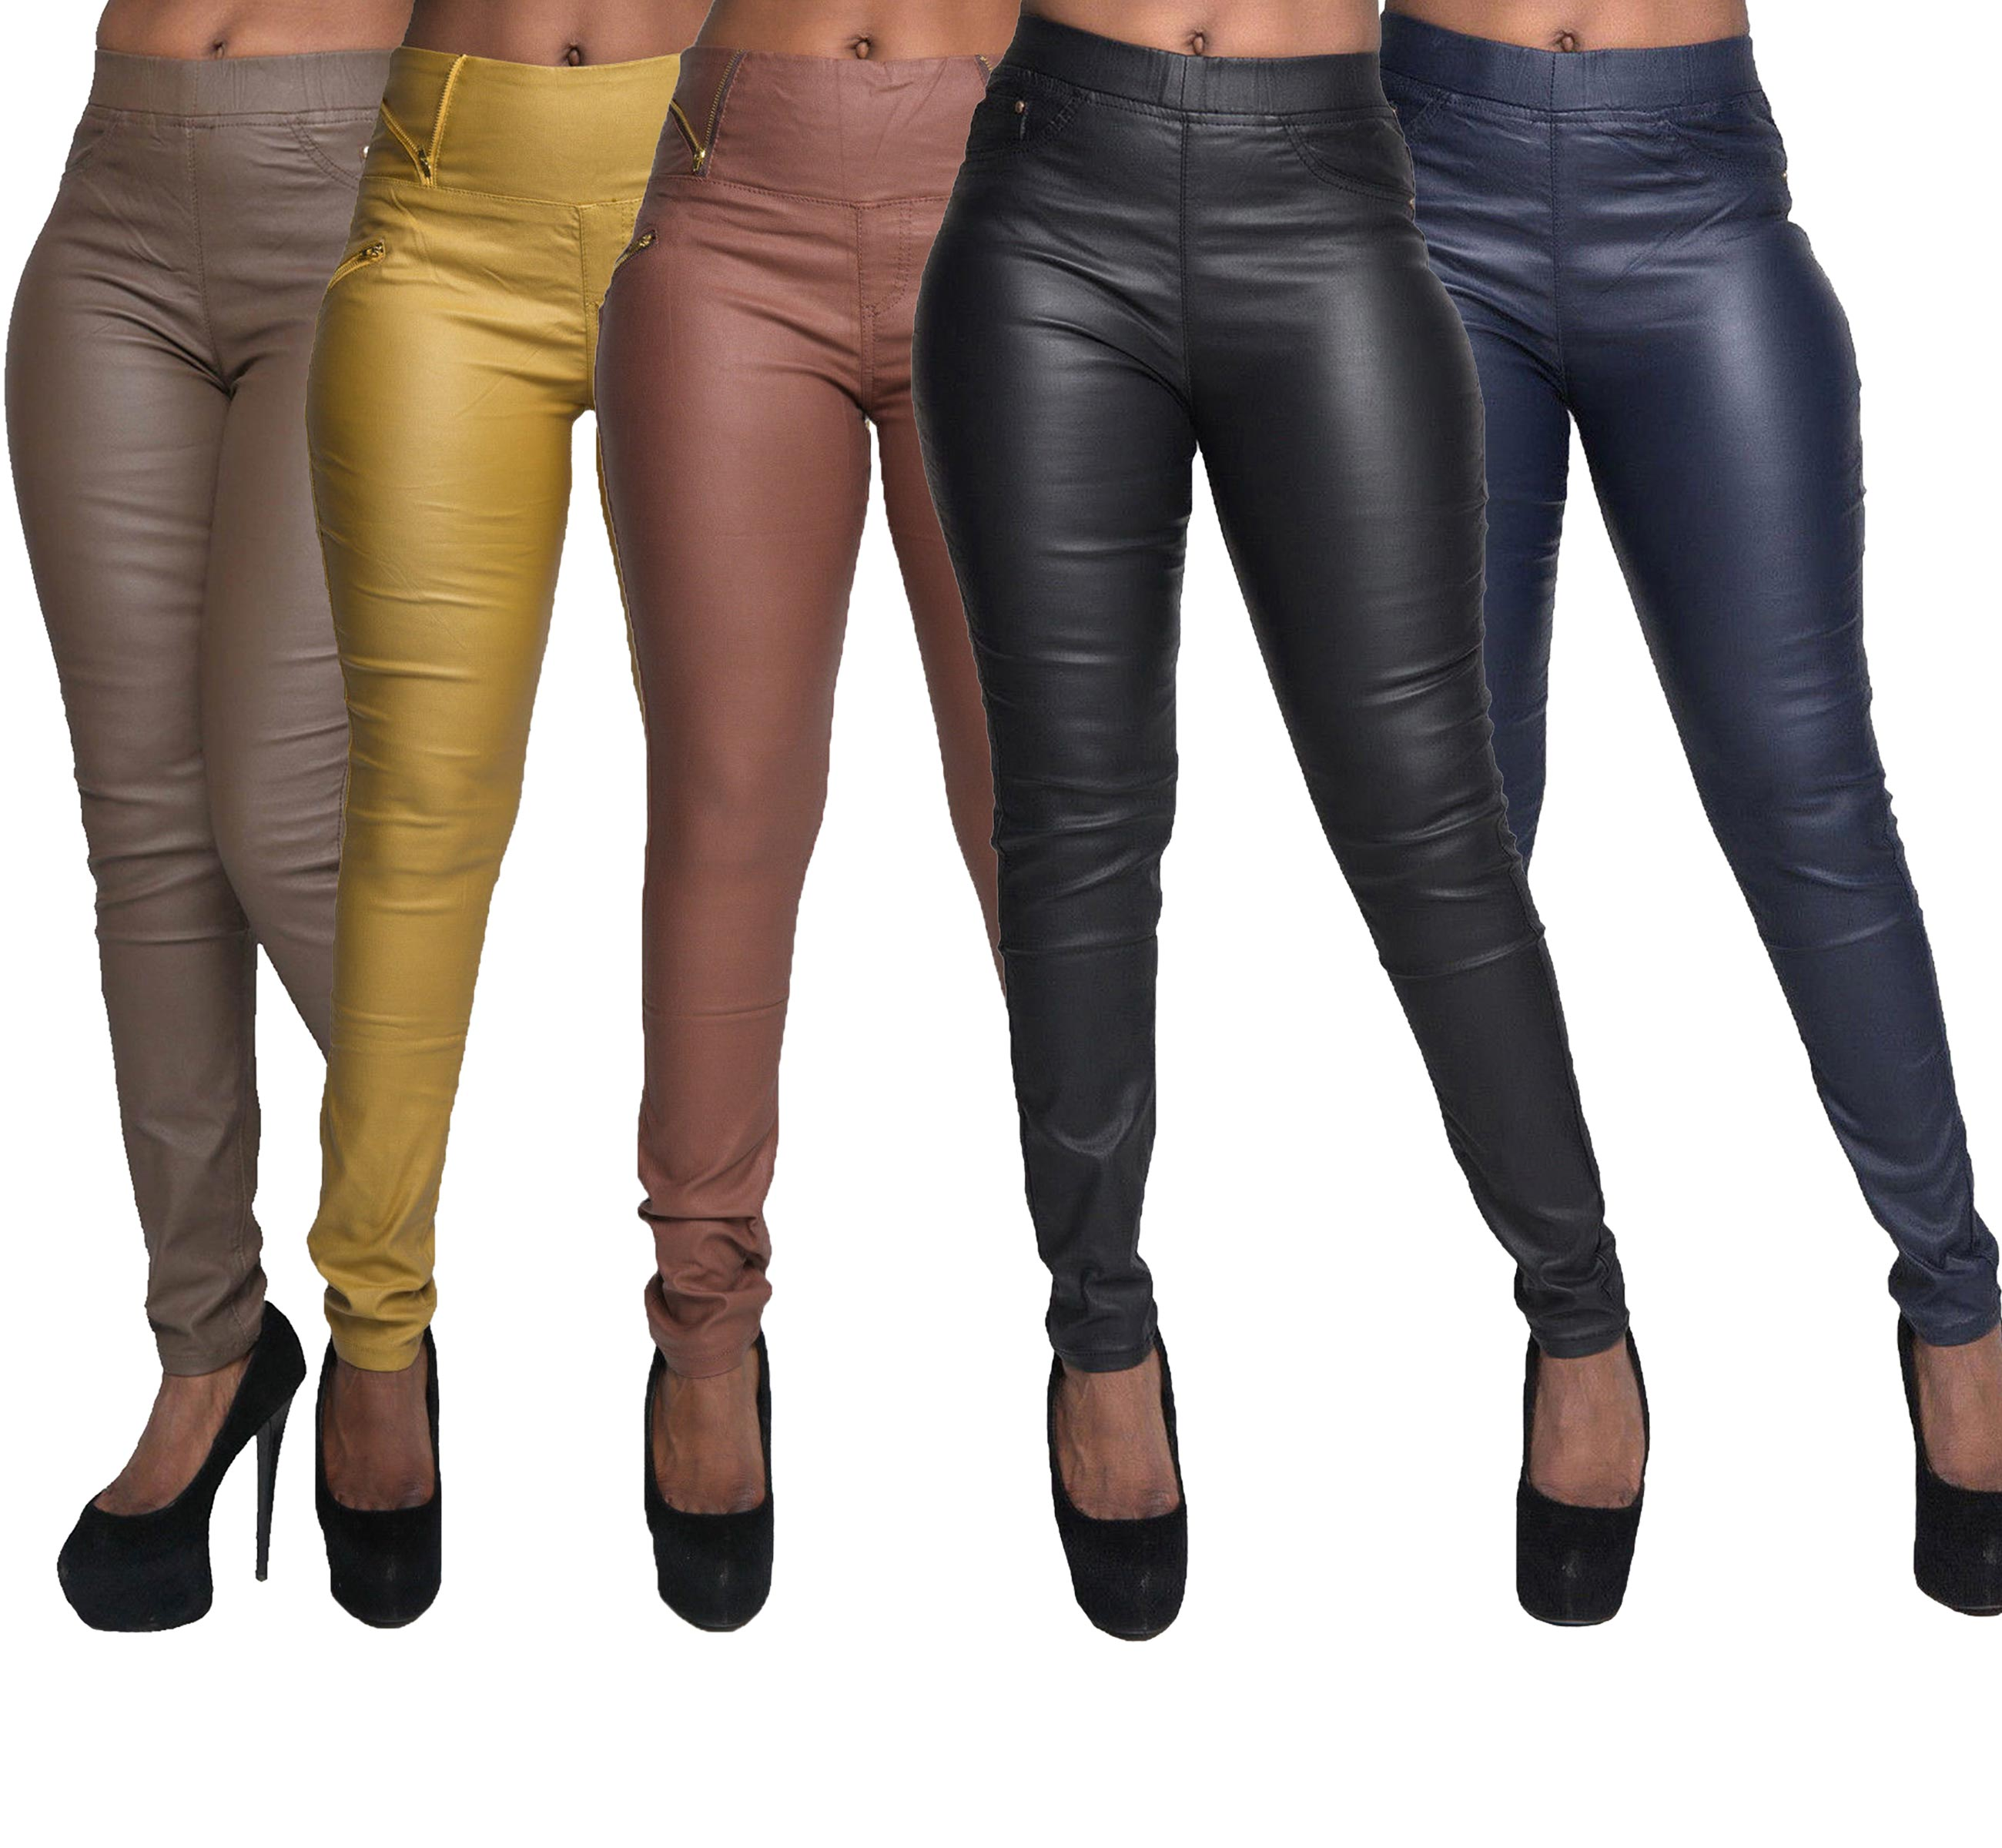 Find great deals on eBay for slim jeggings. Shop with confidence.